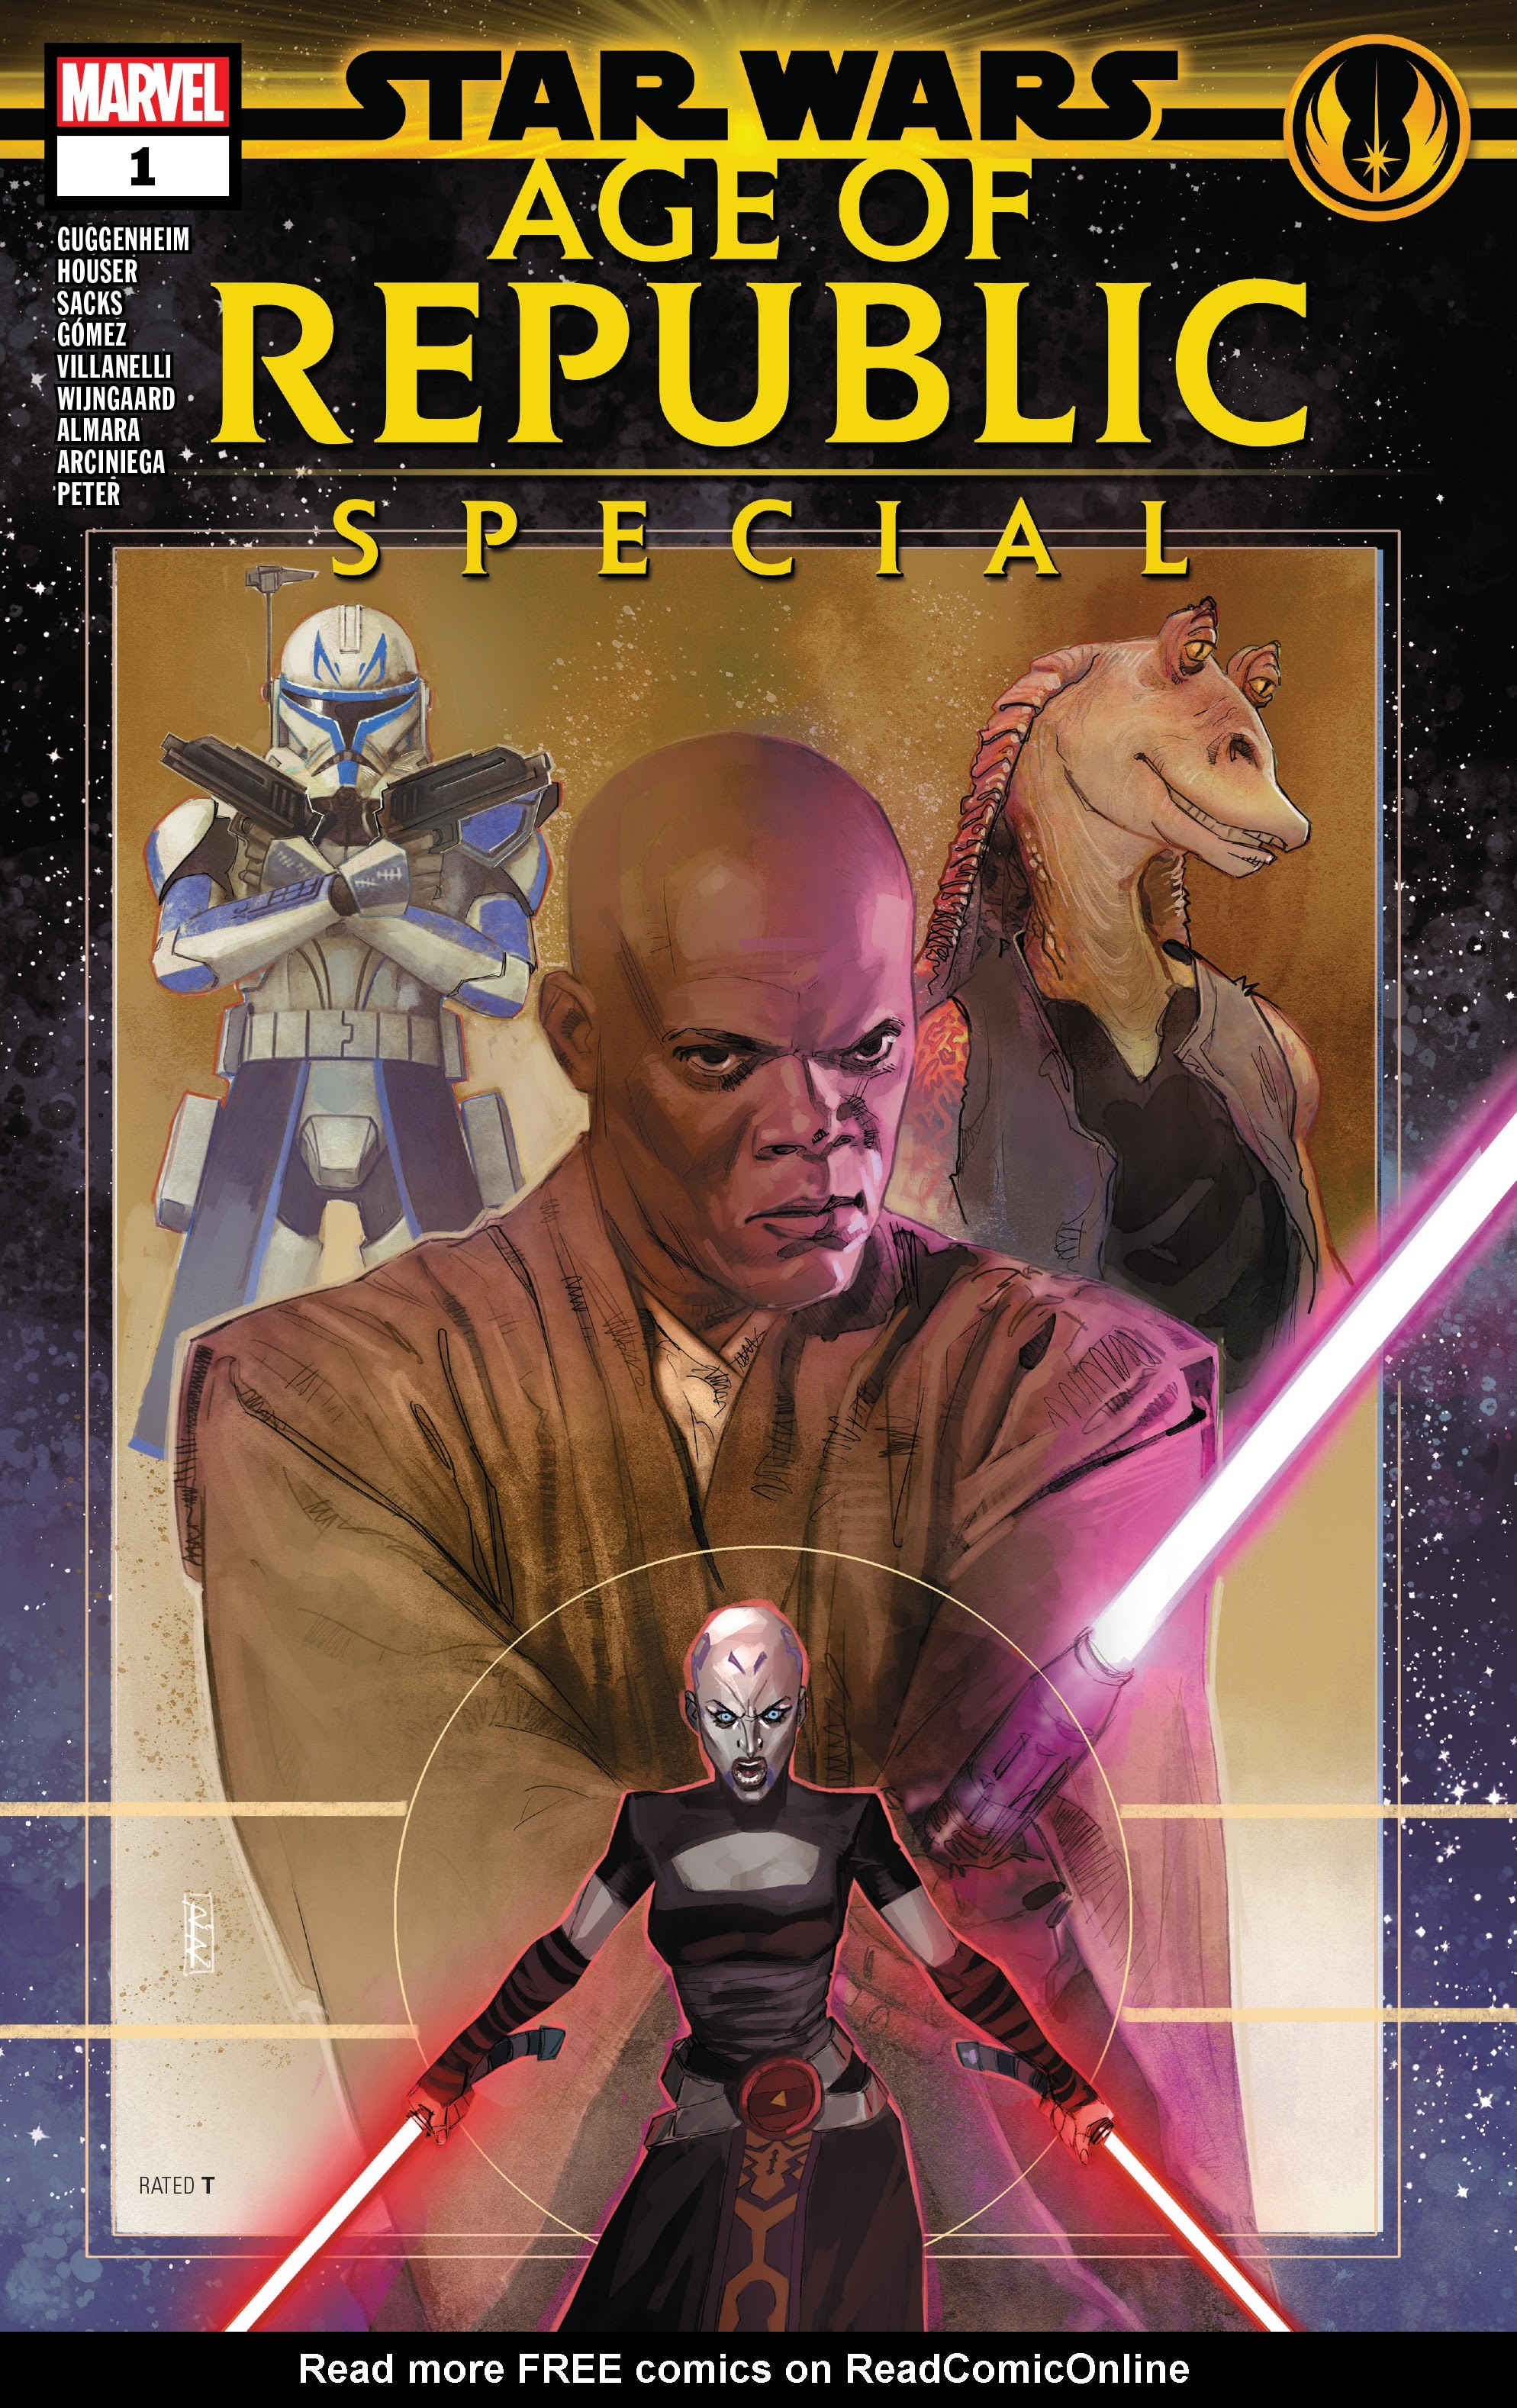 Star Wars: Age of Republic Special Full Page 1